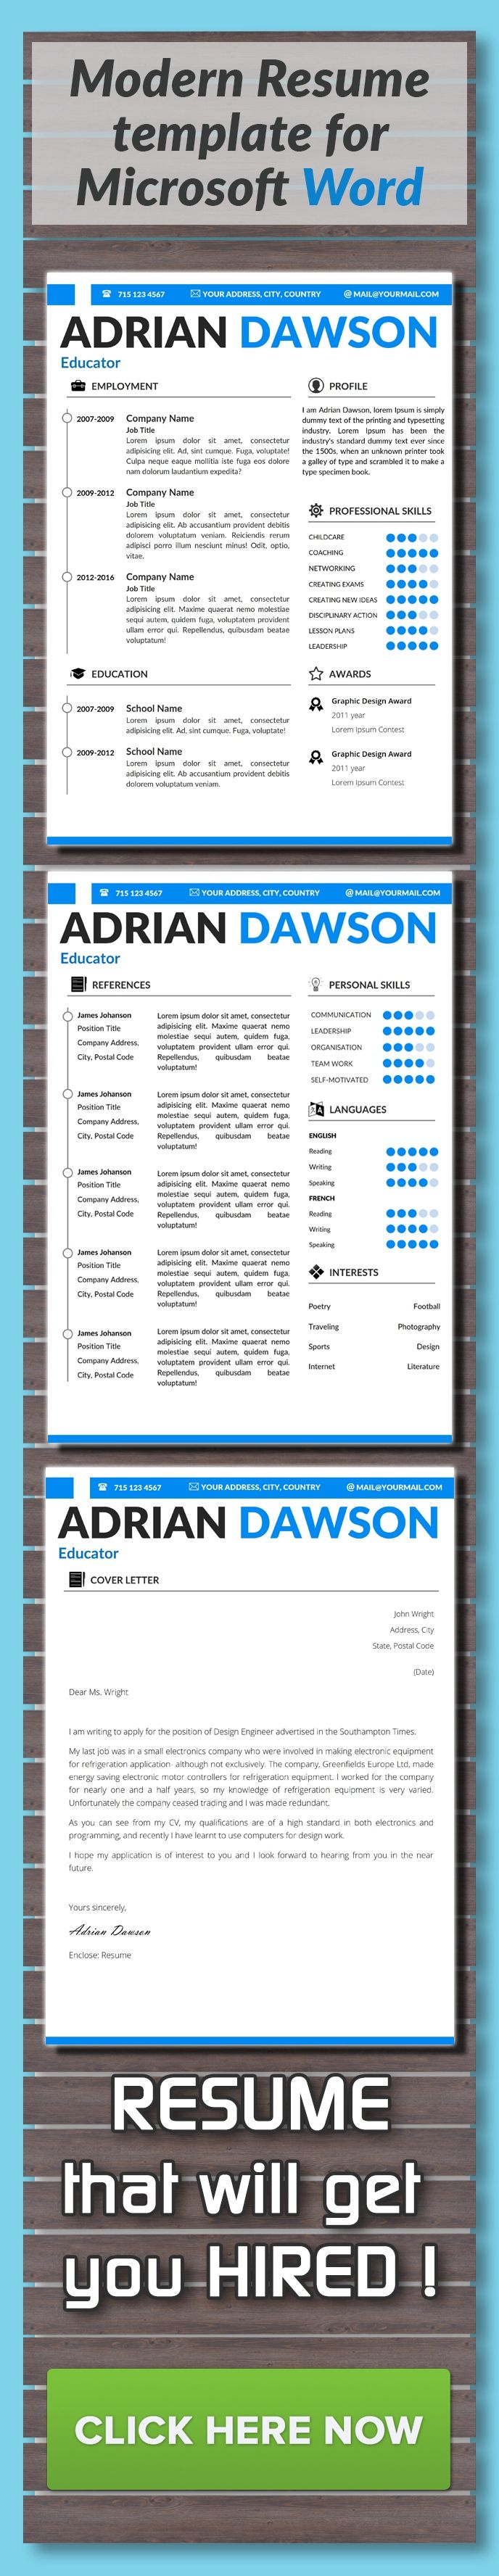 Resume Design That Will Get You Hired